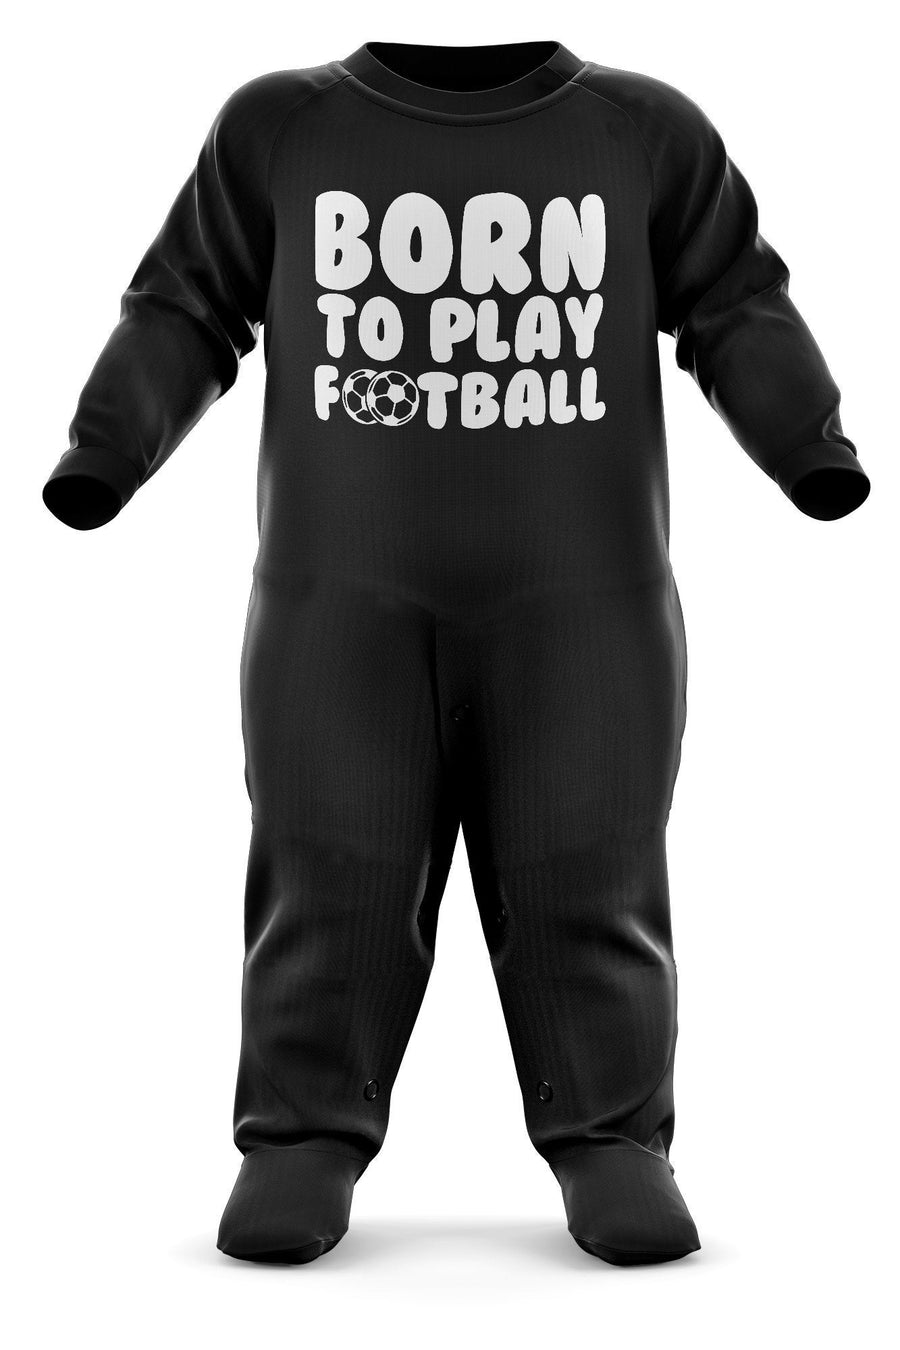 Born To Play Football Babygrow - Football Baby Romper Suit - Babies Soccer Christmas Gift - Birthday Present - Newborn Sizes Available - Black, Red, Sky Blue Romper